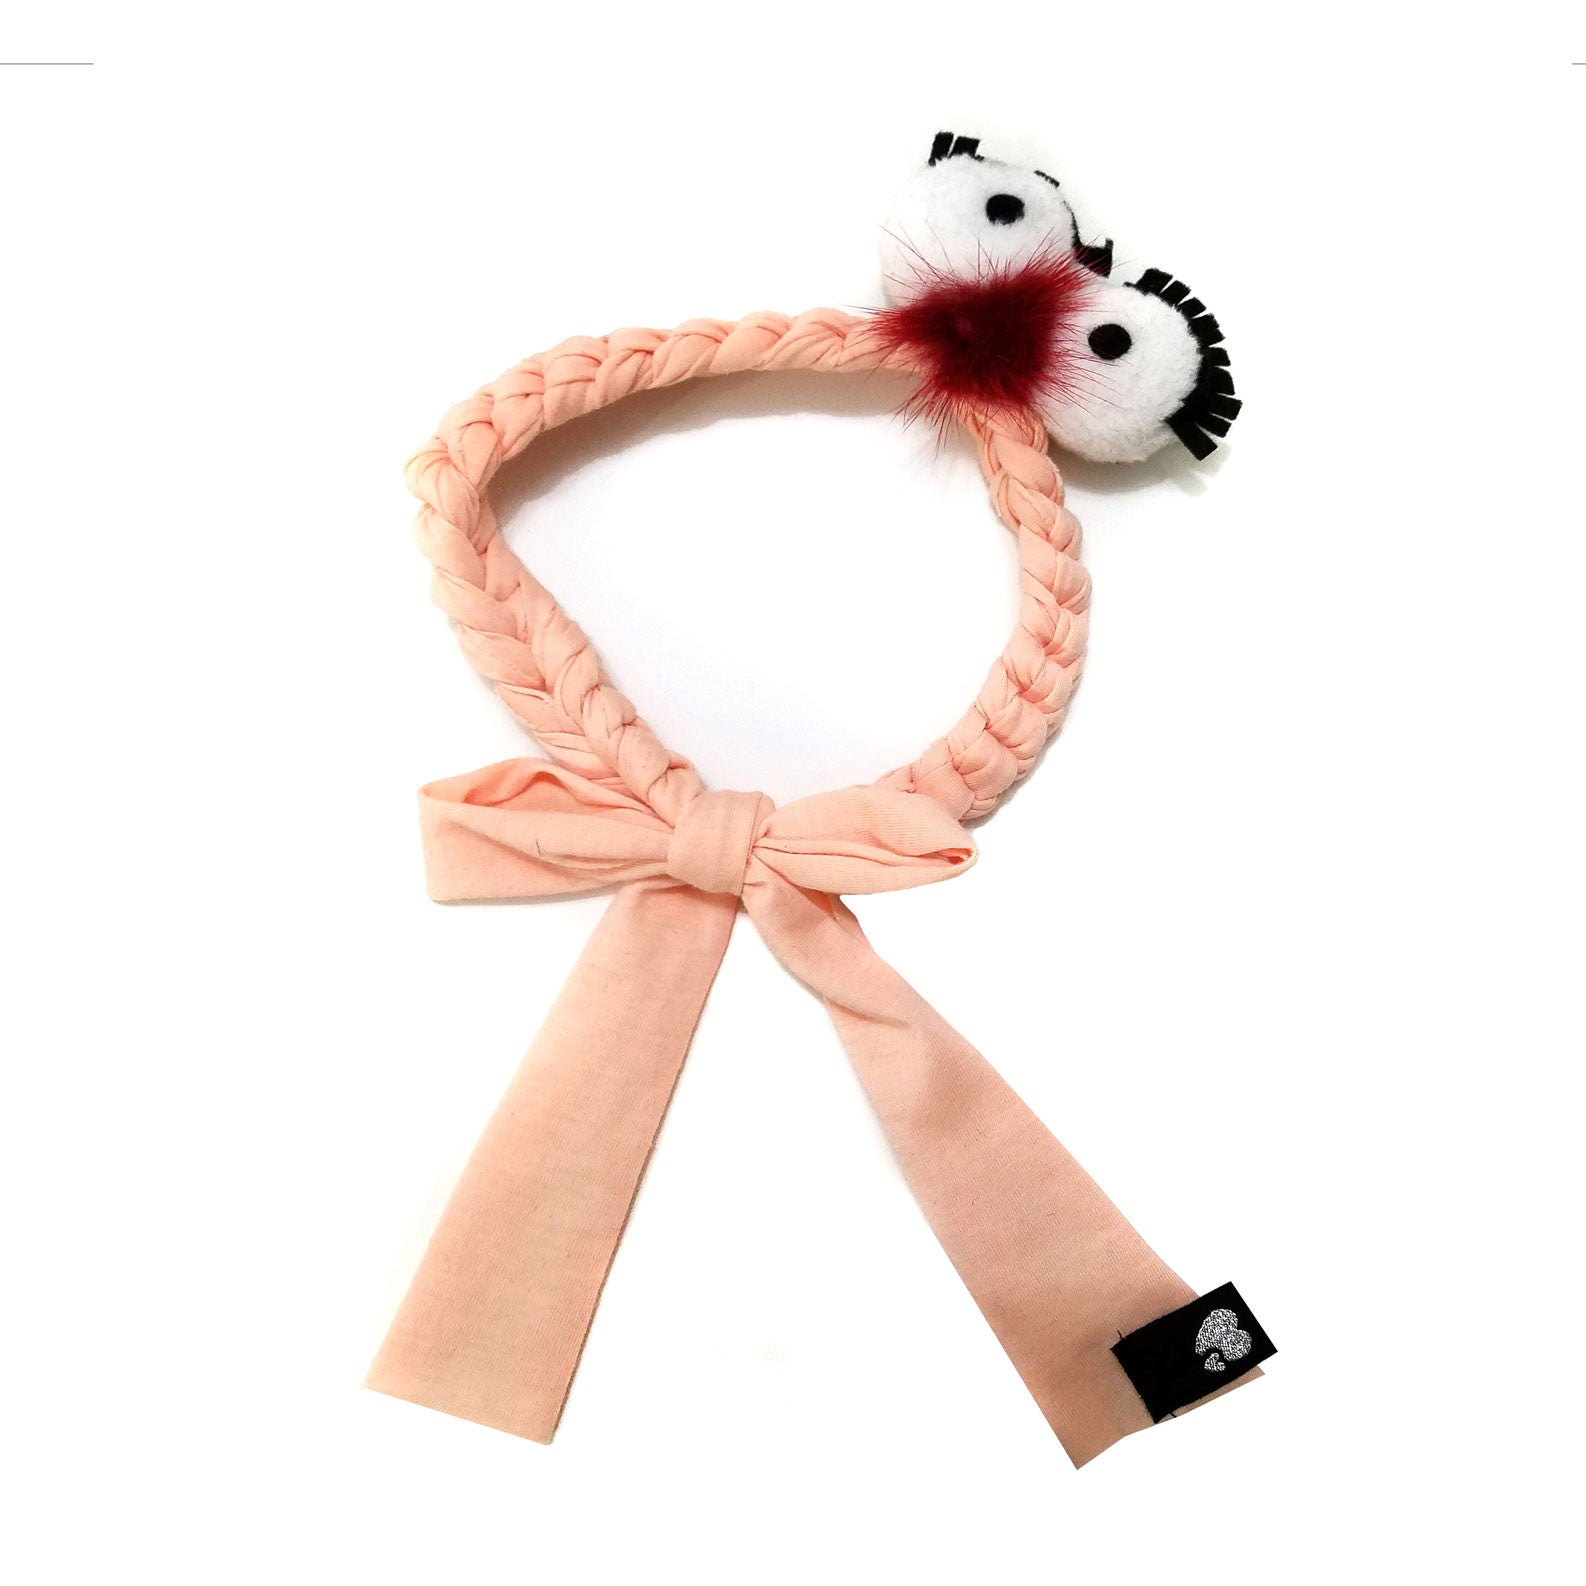 Amour Bows Peach Silly Mini Headband - Ladida